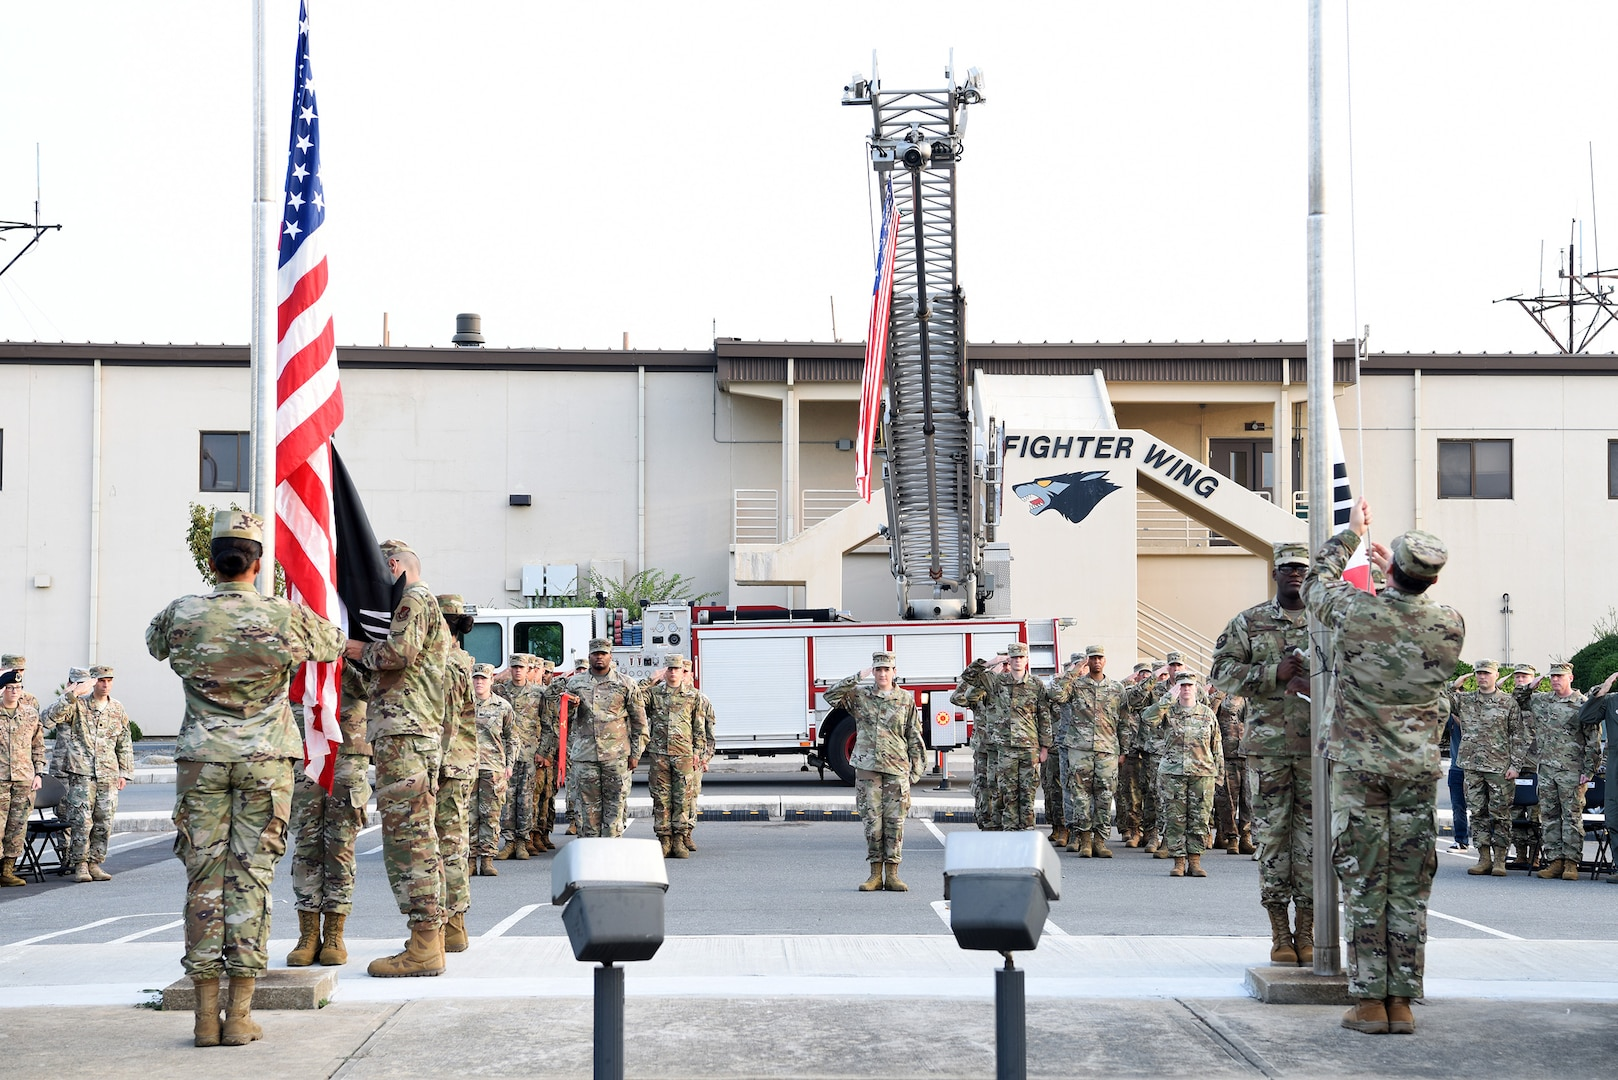 Wolf Pack Honors POW/MIAs Who Are Gone but Not Forgotten